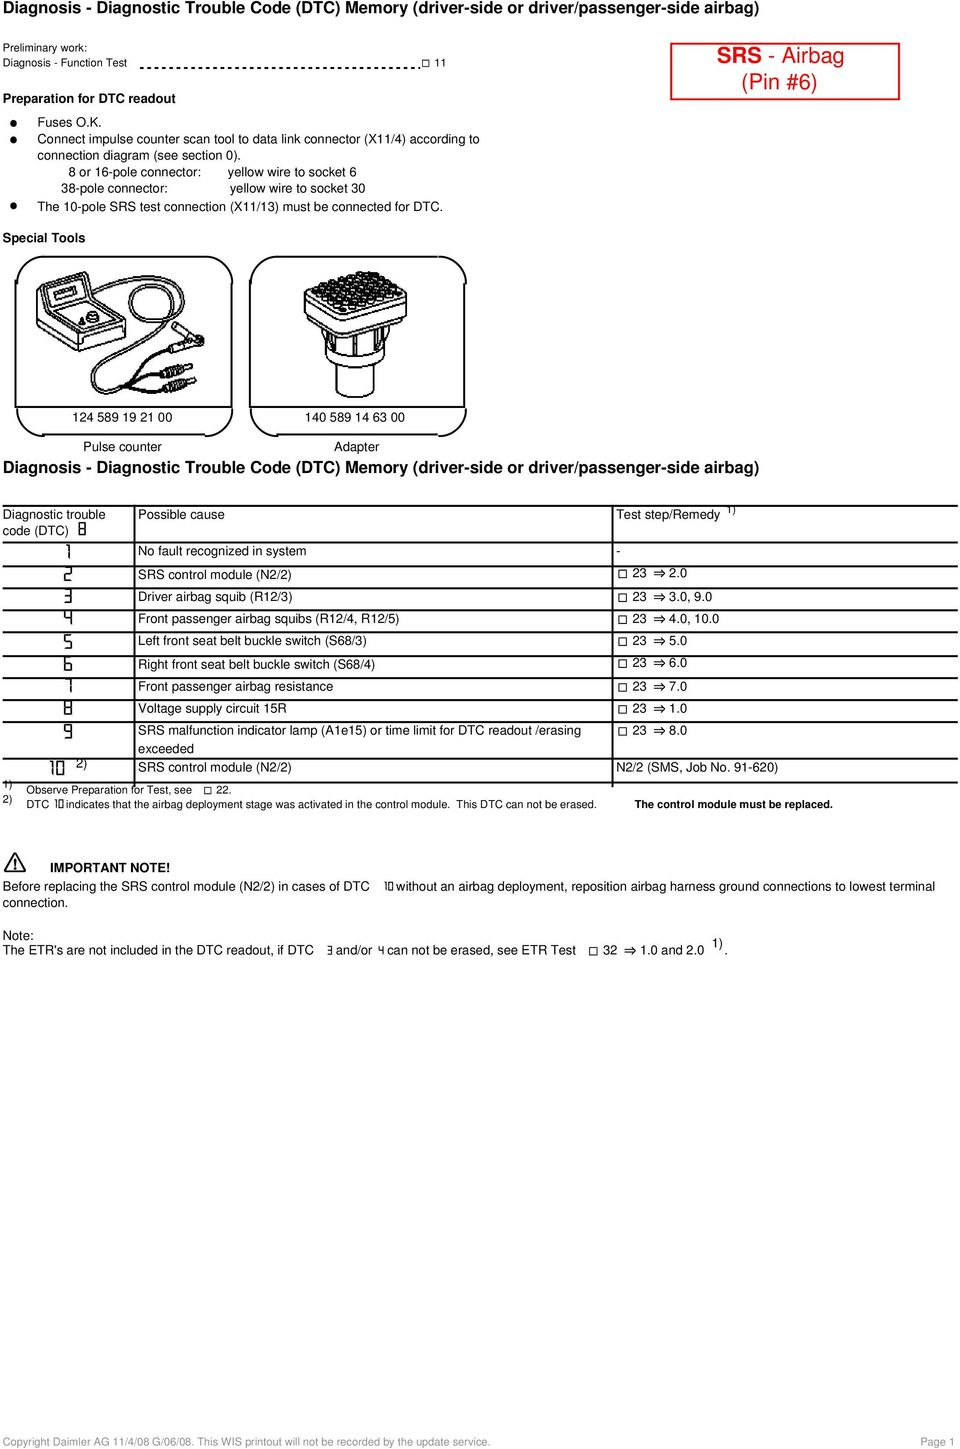 Mercedes Benz Diagnostic Trouble Codes Dtc For 1996 Models ✓ The